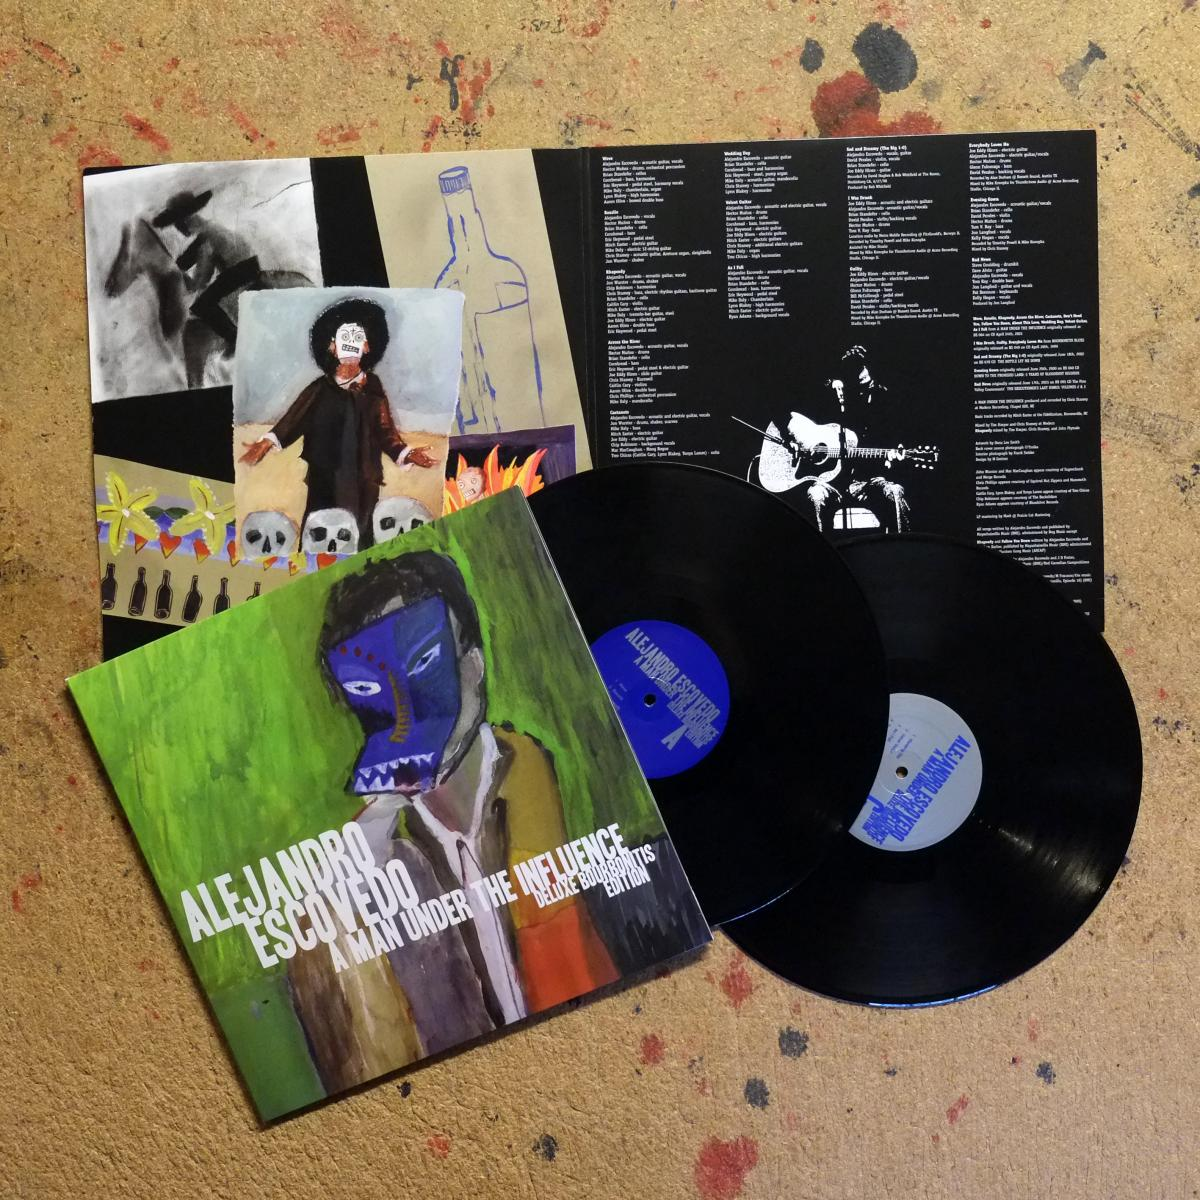 Alejandro Escovedo Man Under the Influence Vinyl